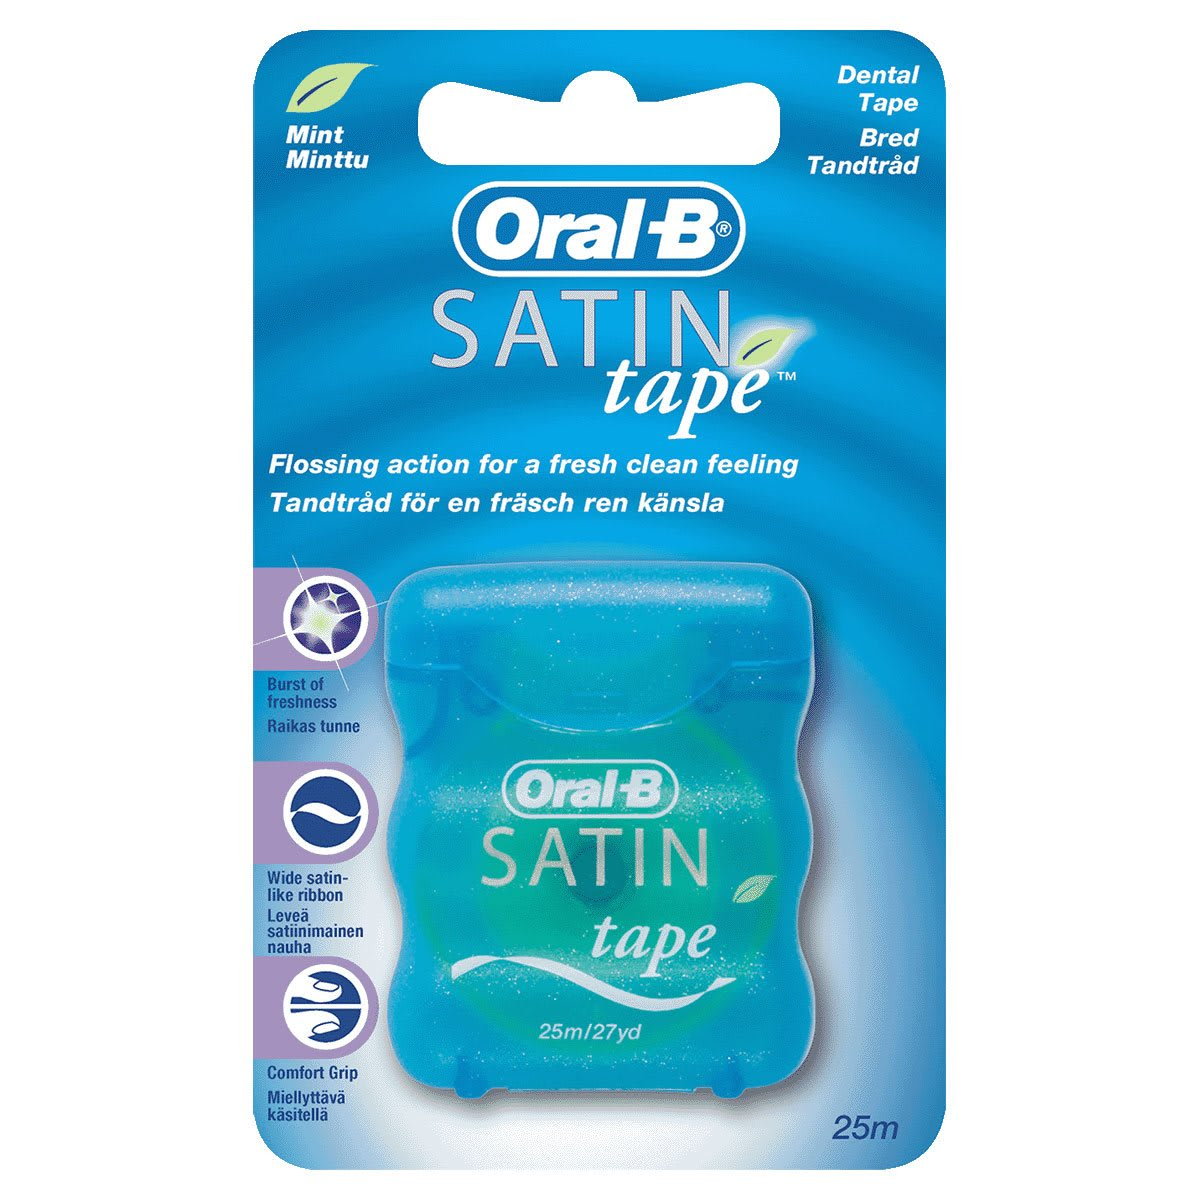 Oral-B Satin Tape